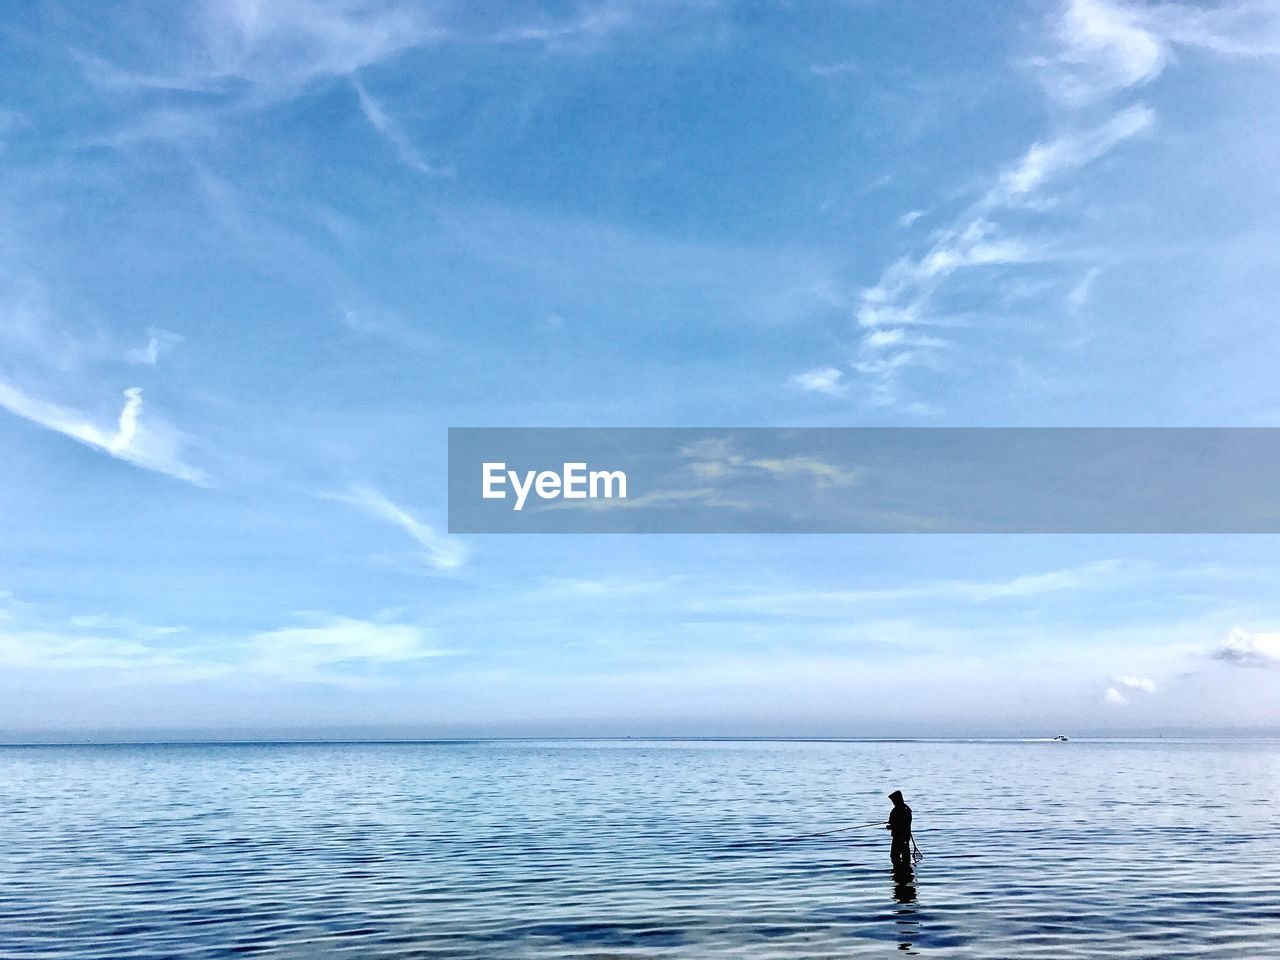 sky, sea, water, cloud - sky, horizon over water, beauty in nature, horizon, tranquility, scenics - nature, one person, tranquil scene, waterfront, nature, day, leisure activity, lifestyles, real people, non-urban scene, outdoors